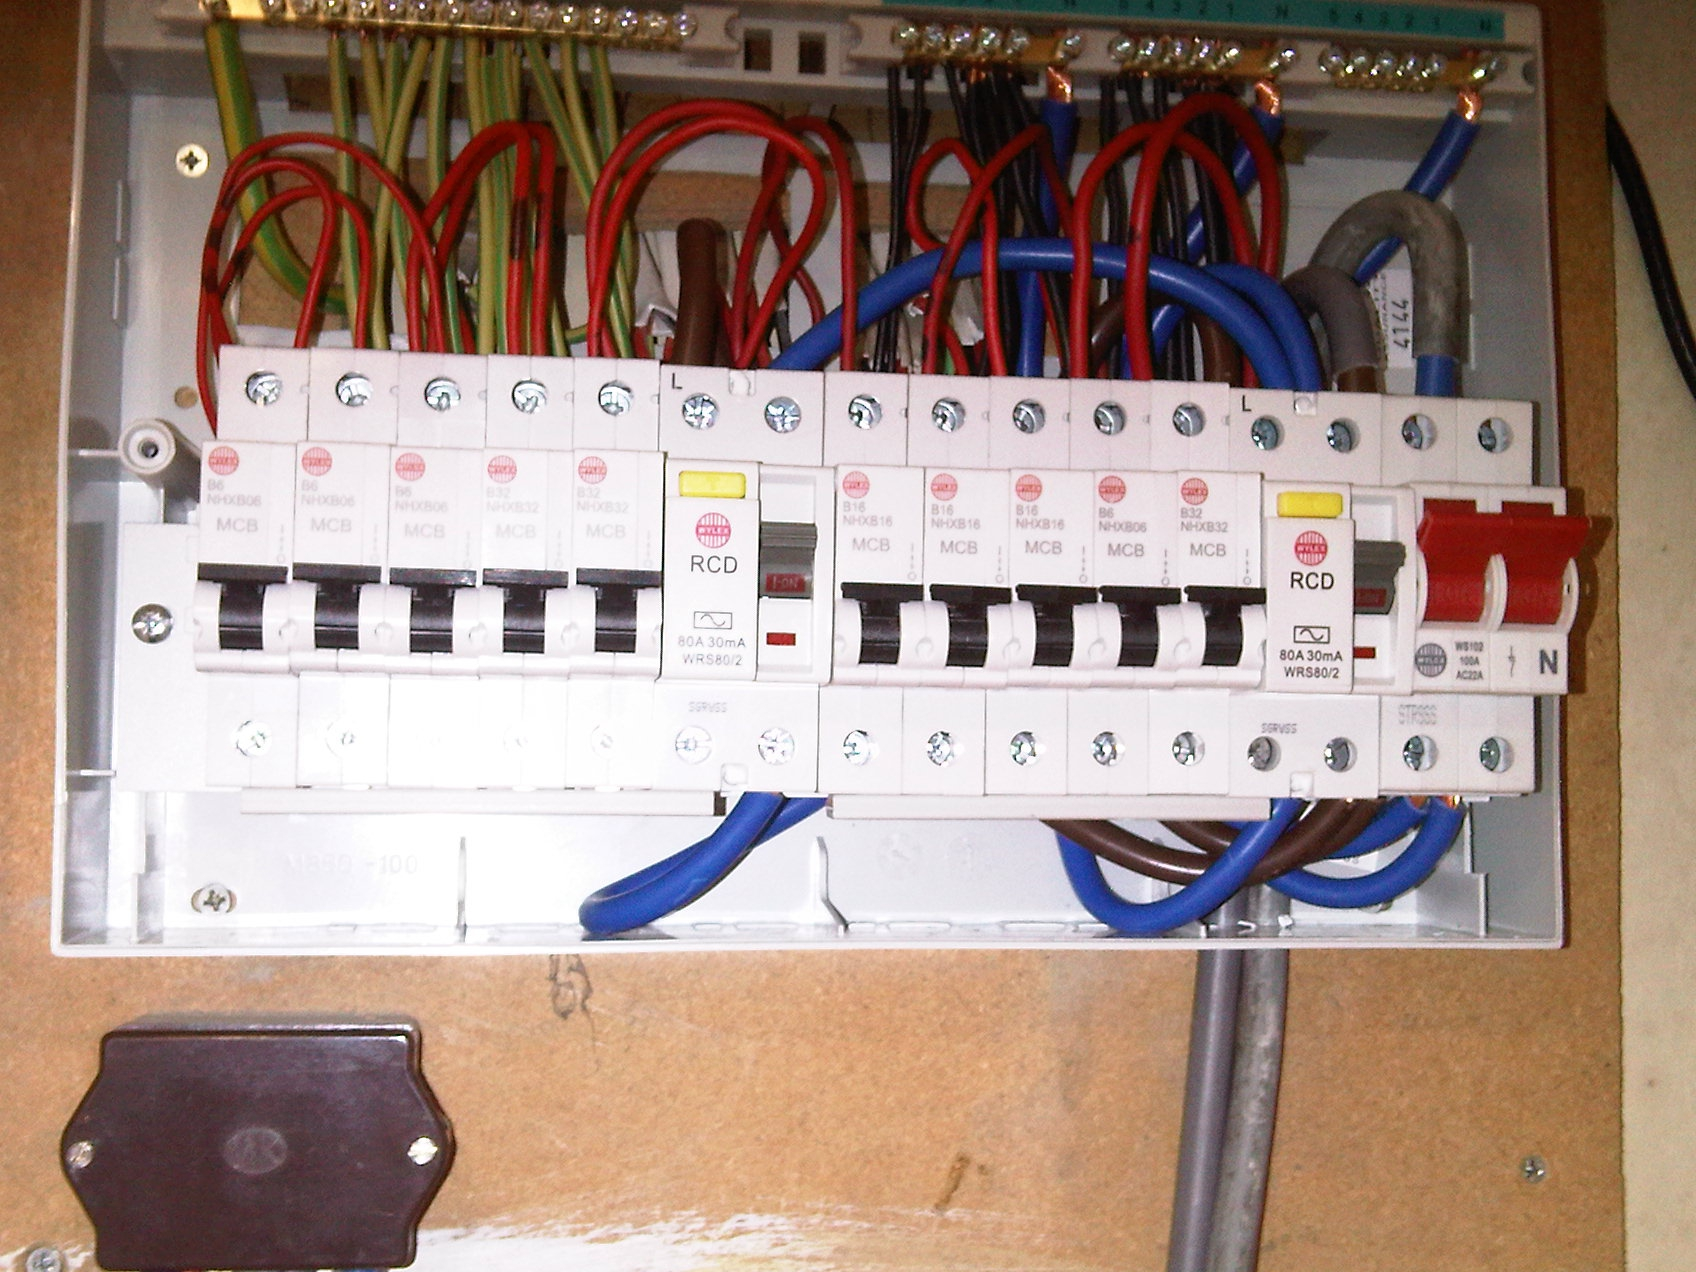 Fusebox 4 mk repair centre notices & news fuse box diagram at bakdesigns.co